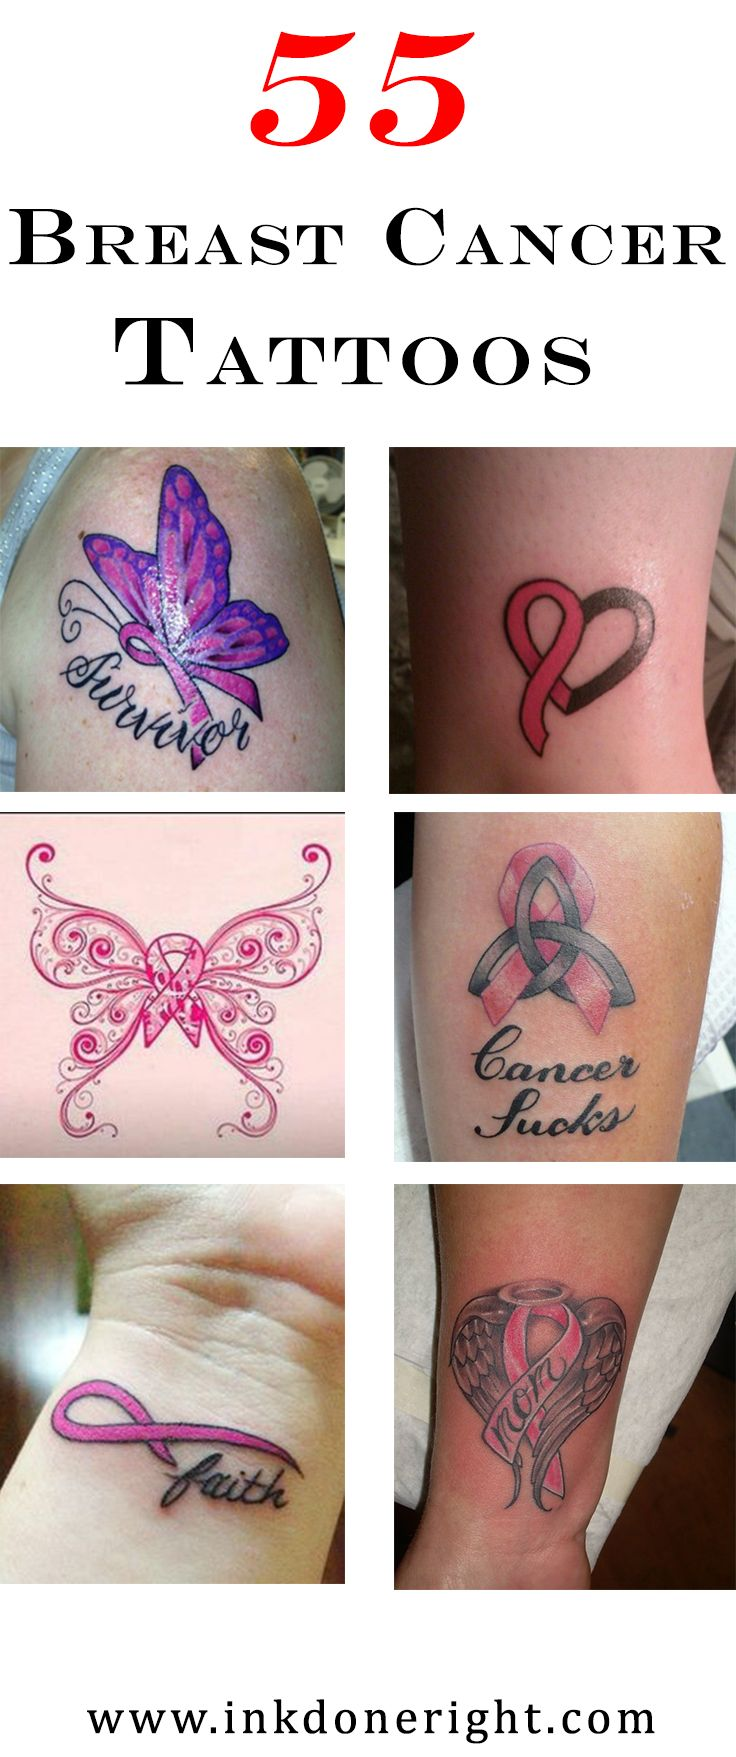 55 breast cancer tattoo pictures cancer tattoos symbols for Tattoos breast cancer